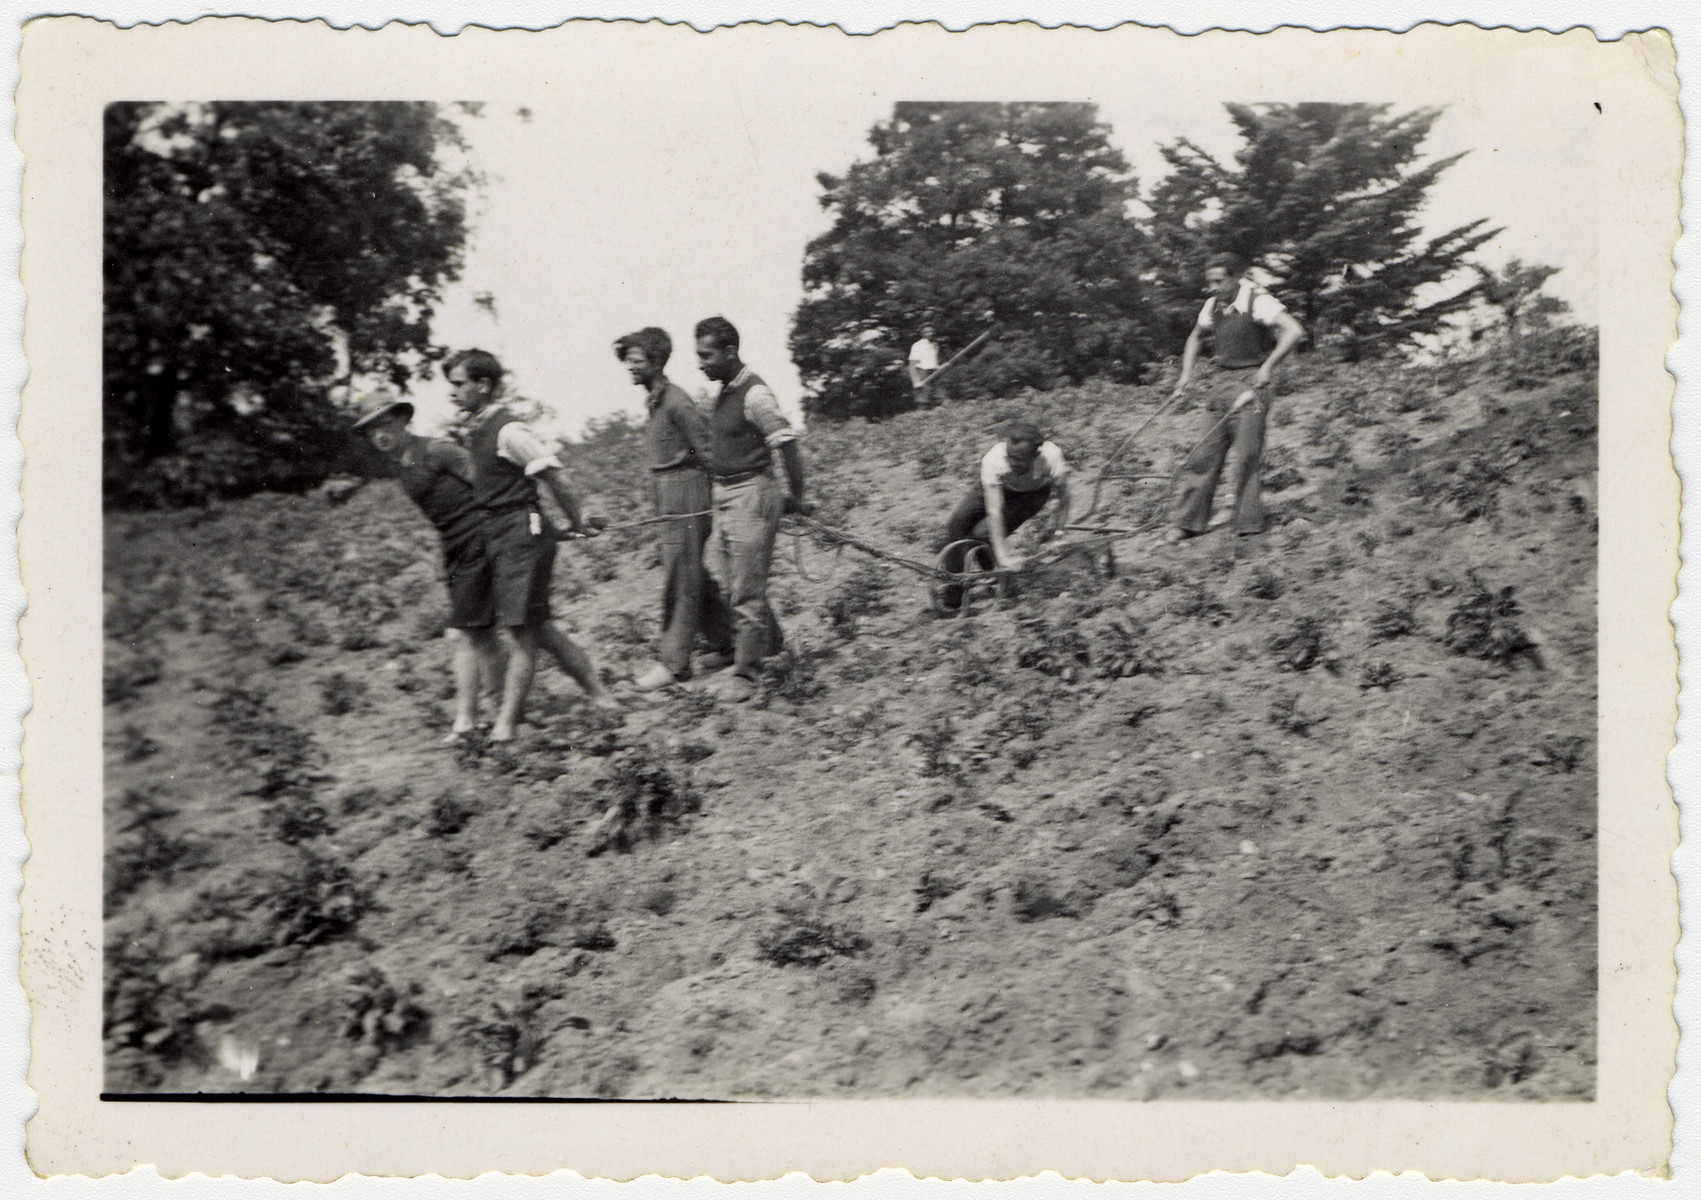 Young Jewish men pull a plow through a potato field at the La Ramee agricultural school.  The school's second director, Rappaport is pictured second from the right.  (He became director after the first director, Haroun Tazieff, left to join the resistance.)